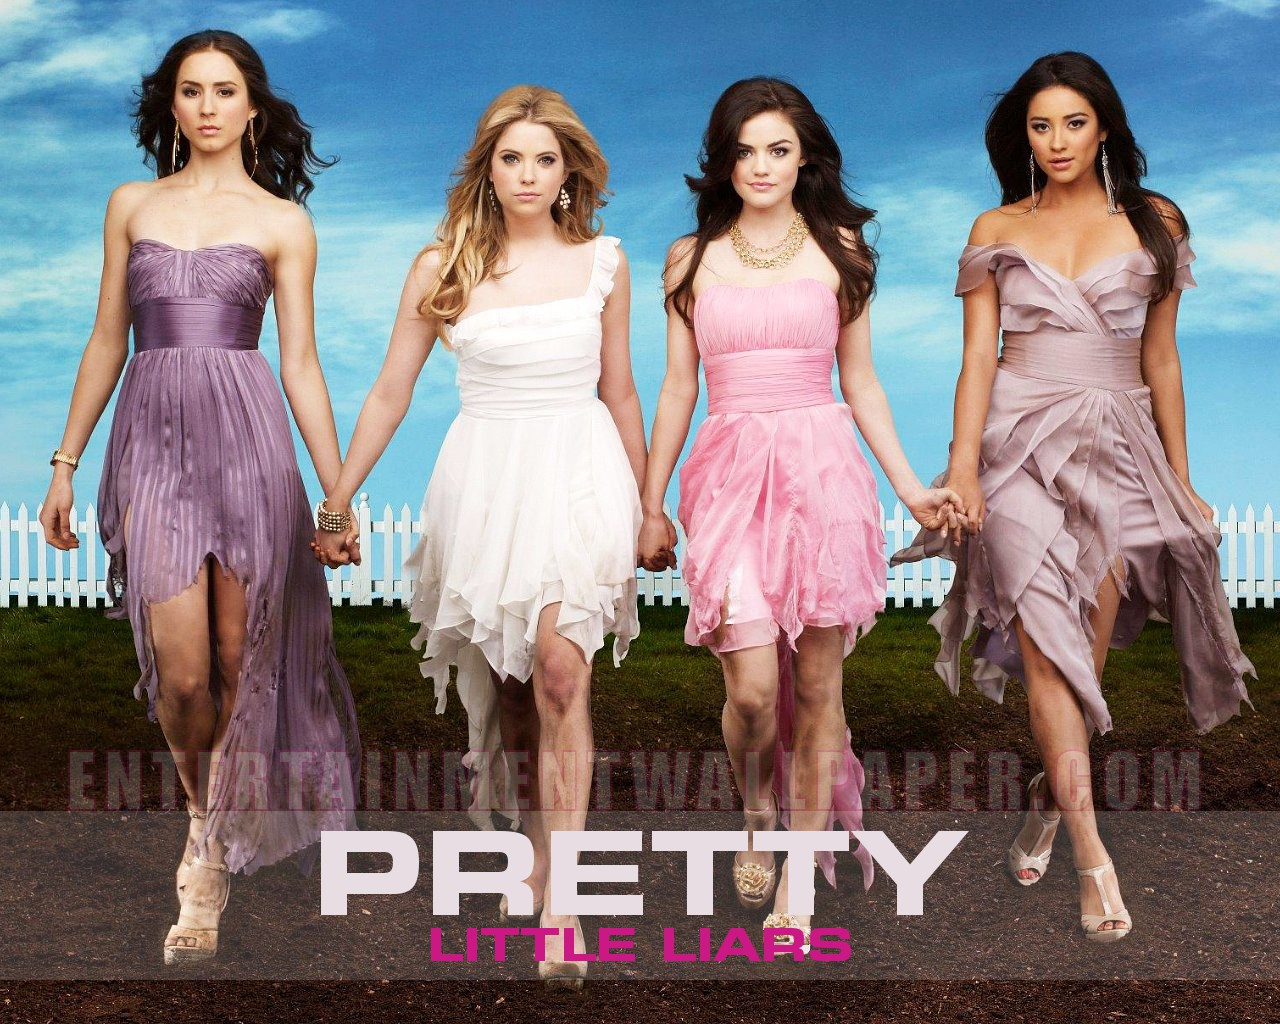 Vamp1991 pretty Little liars Wallpapers 1280x1024